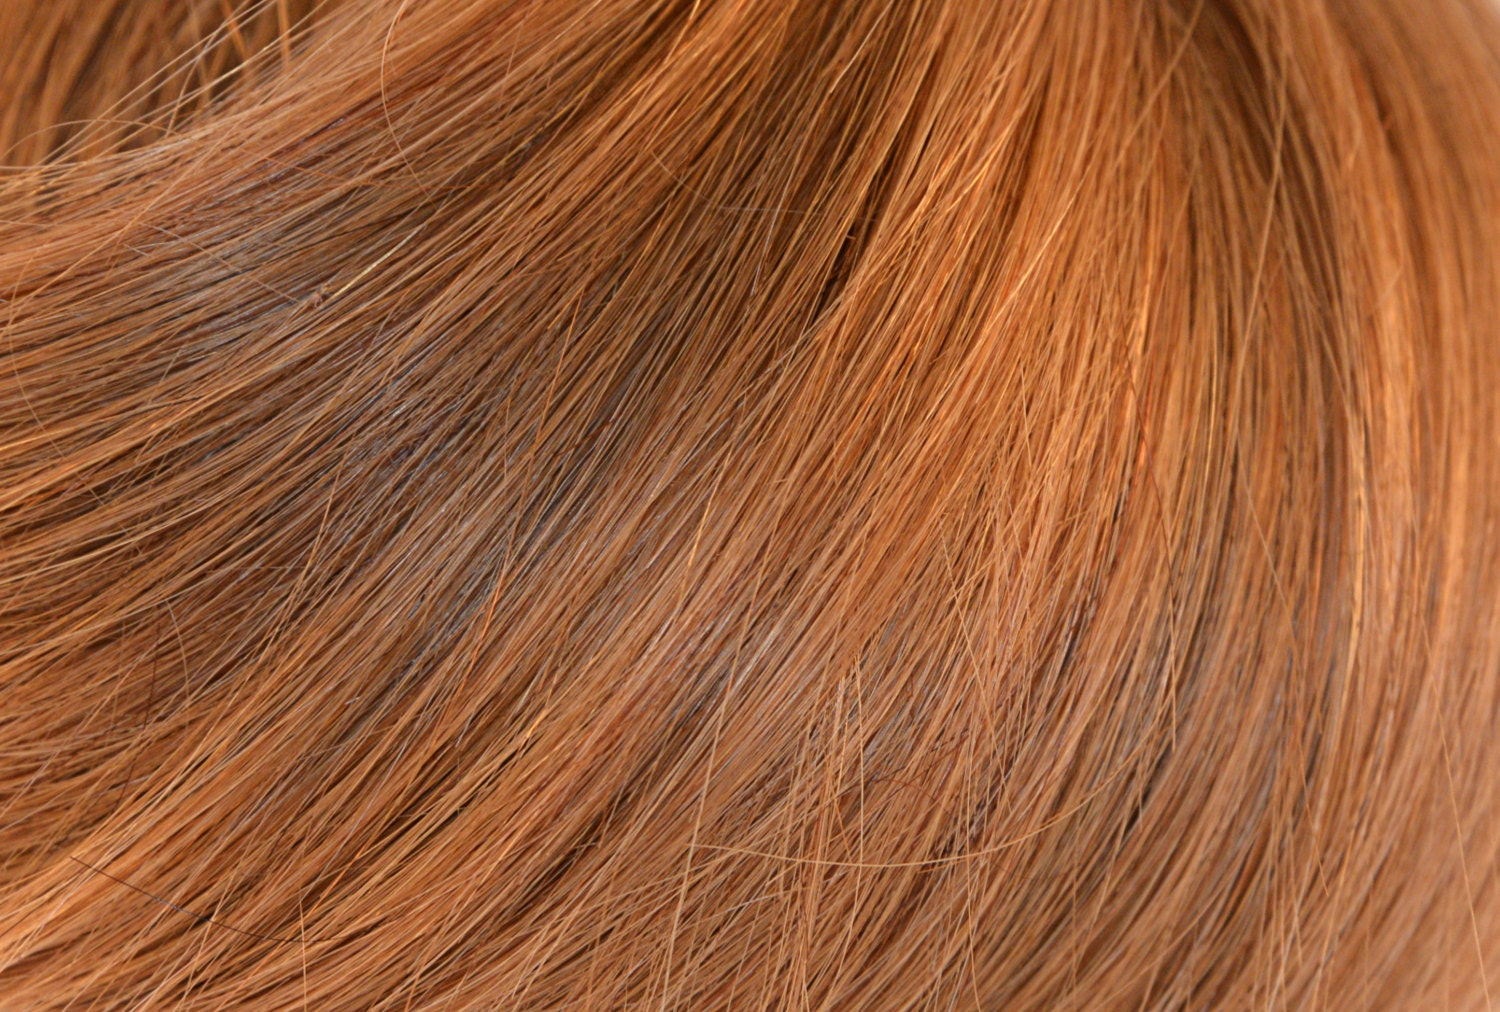 Strawberry Blonde Human Remy Hair Extensions Full Head